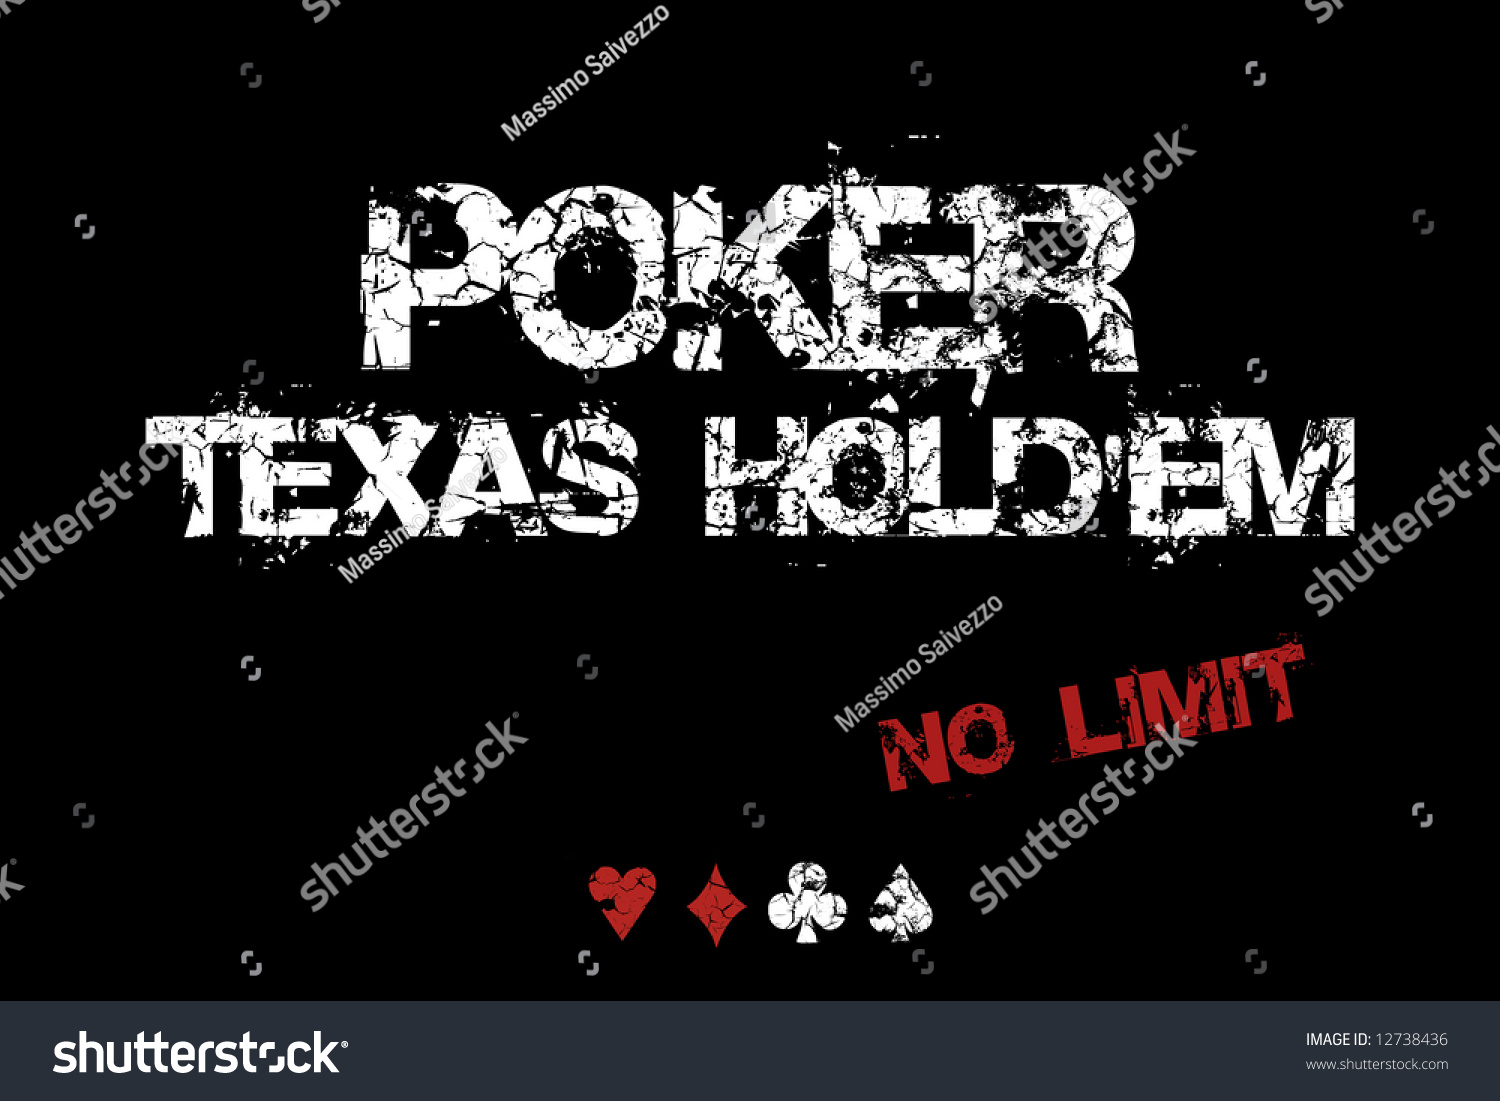 Poker texas hold em no limit download